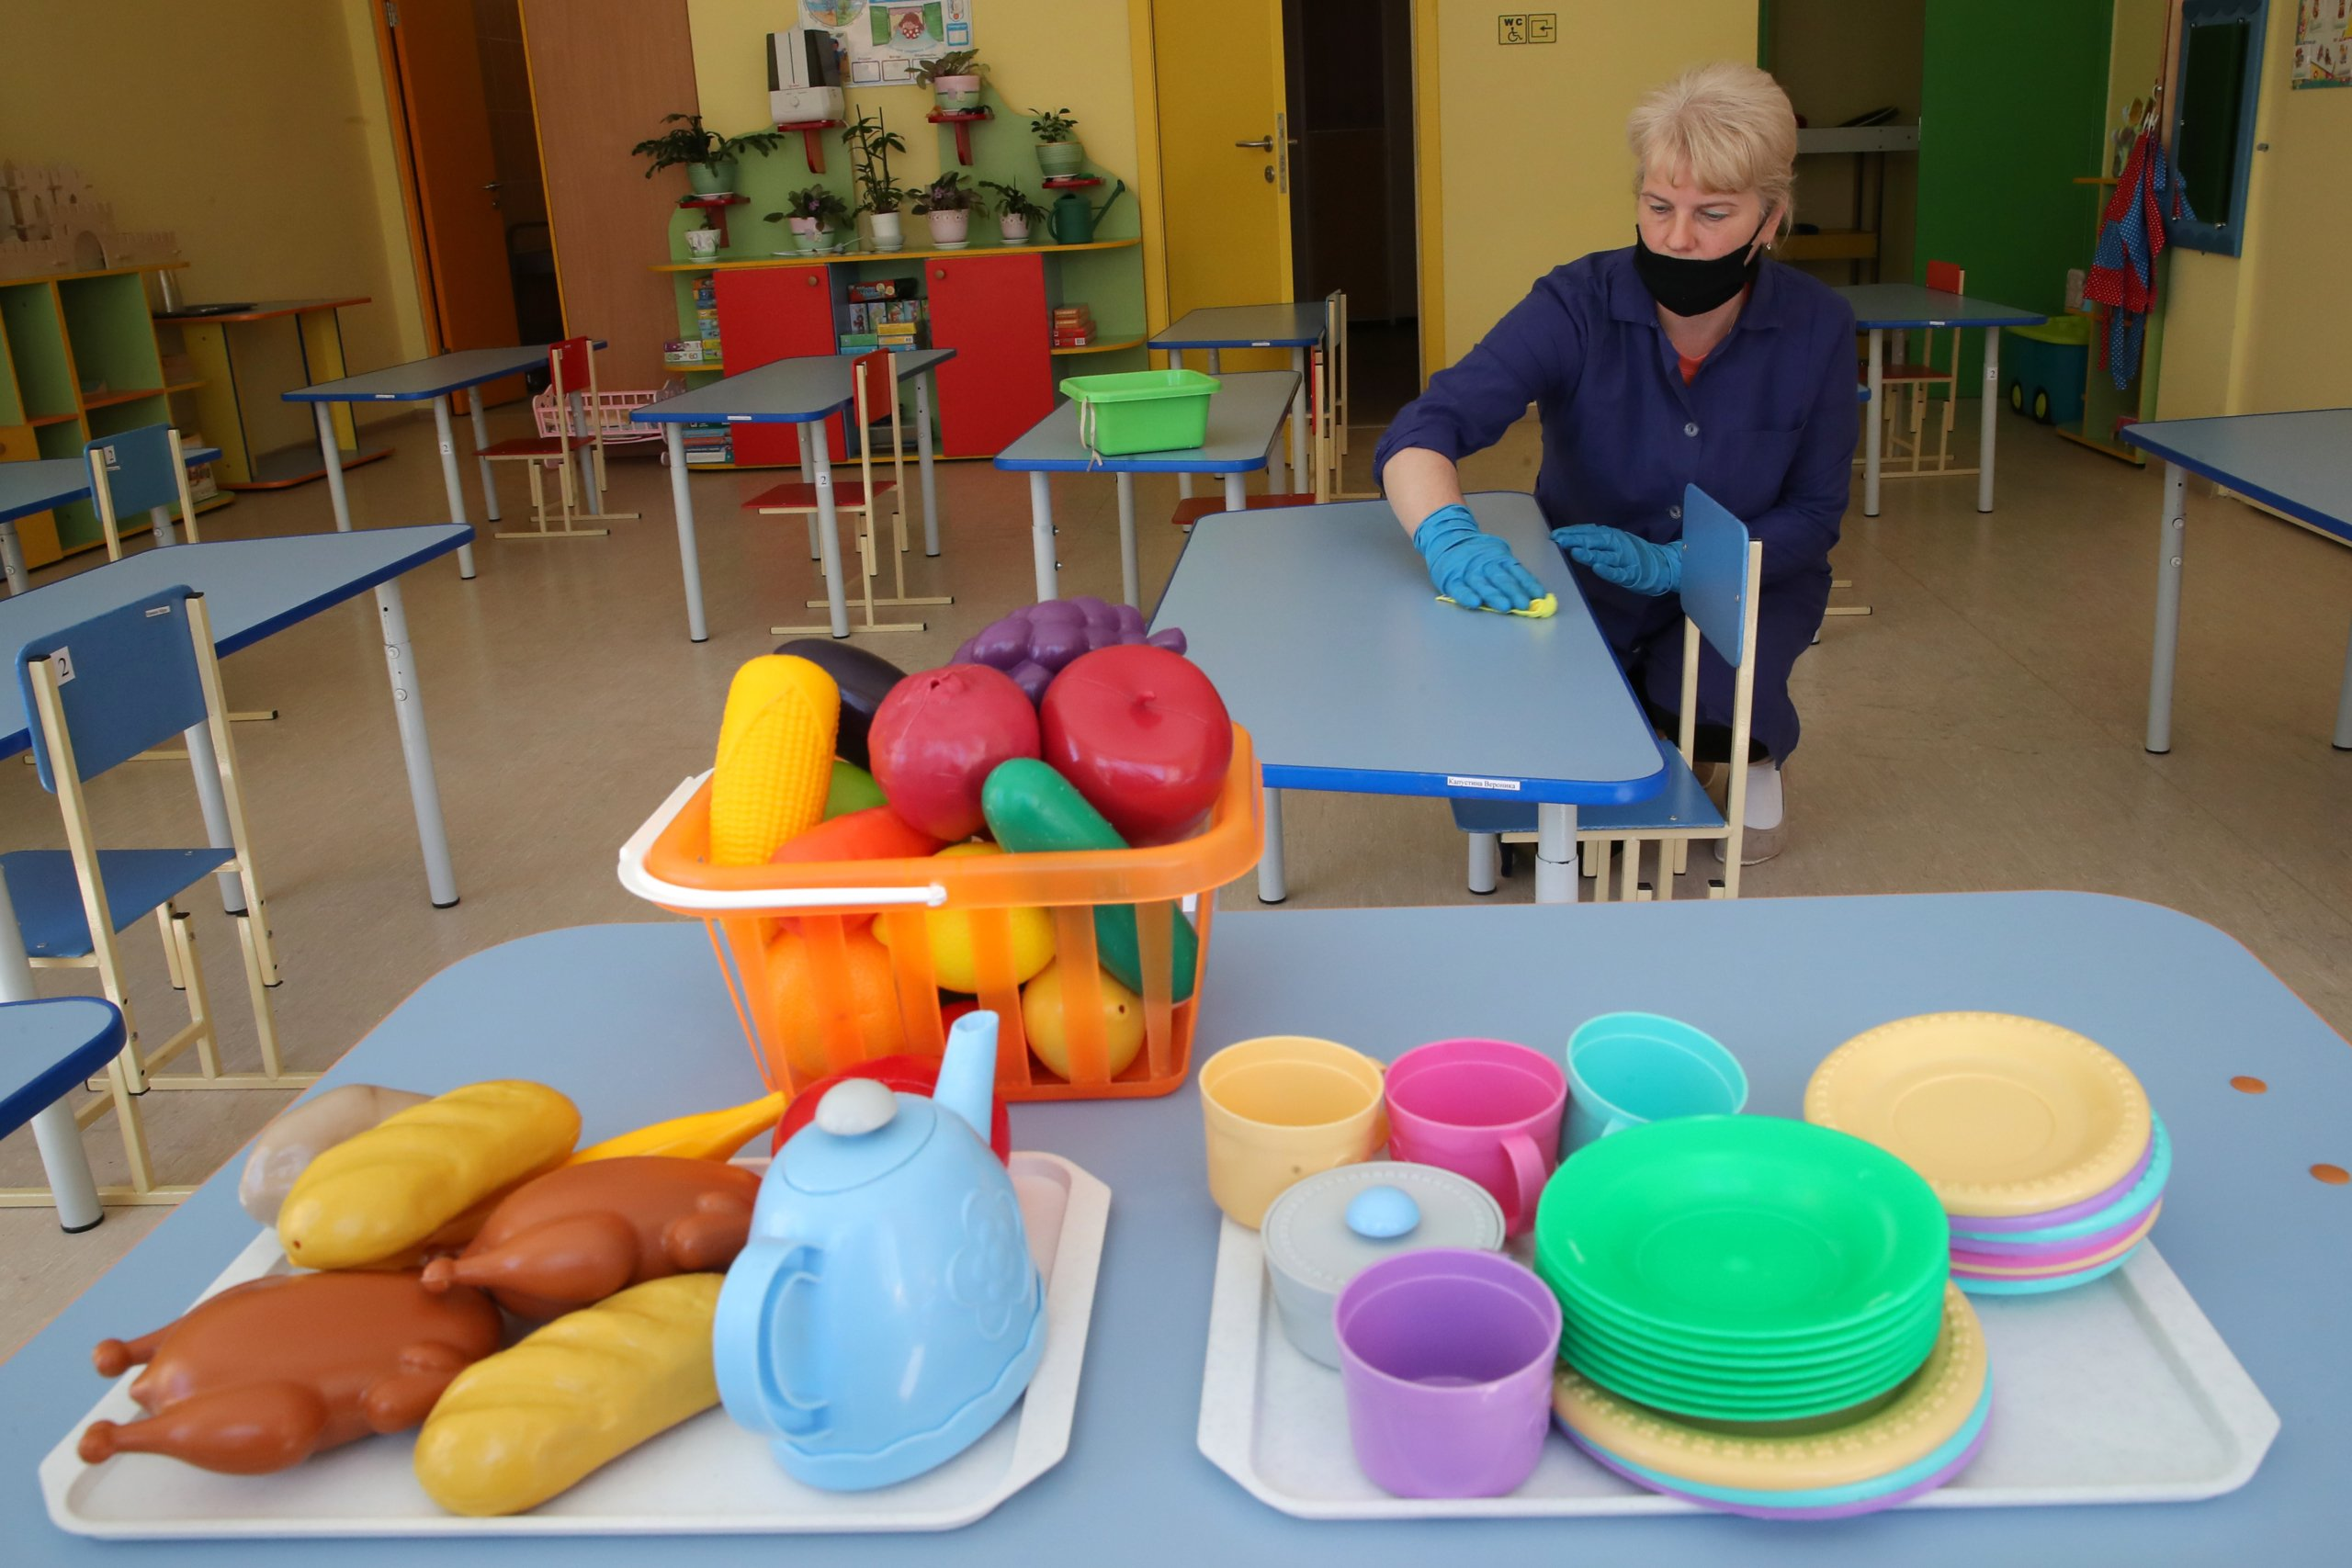 Moscow school's child care facility prepares for opening after COVID-19 lockdown